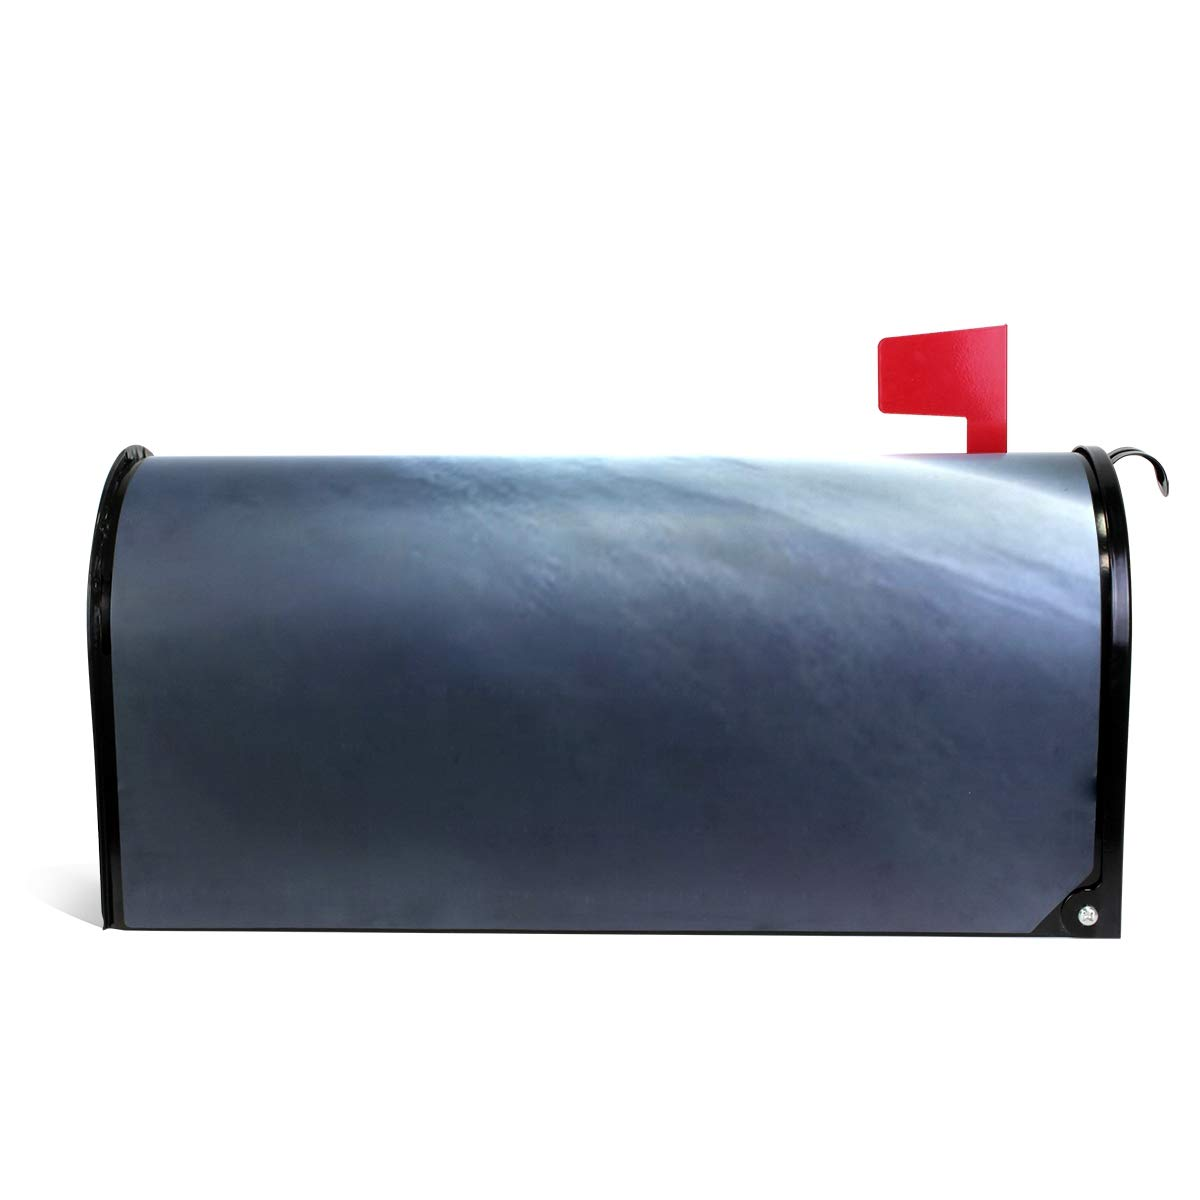 CHENG XIN Mailbox Cover Personalized Cosmic Light Magnetic PVC Suitable for US Mailbox